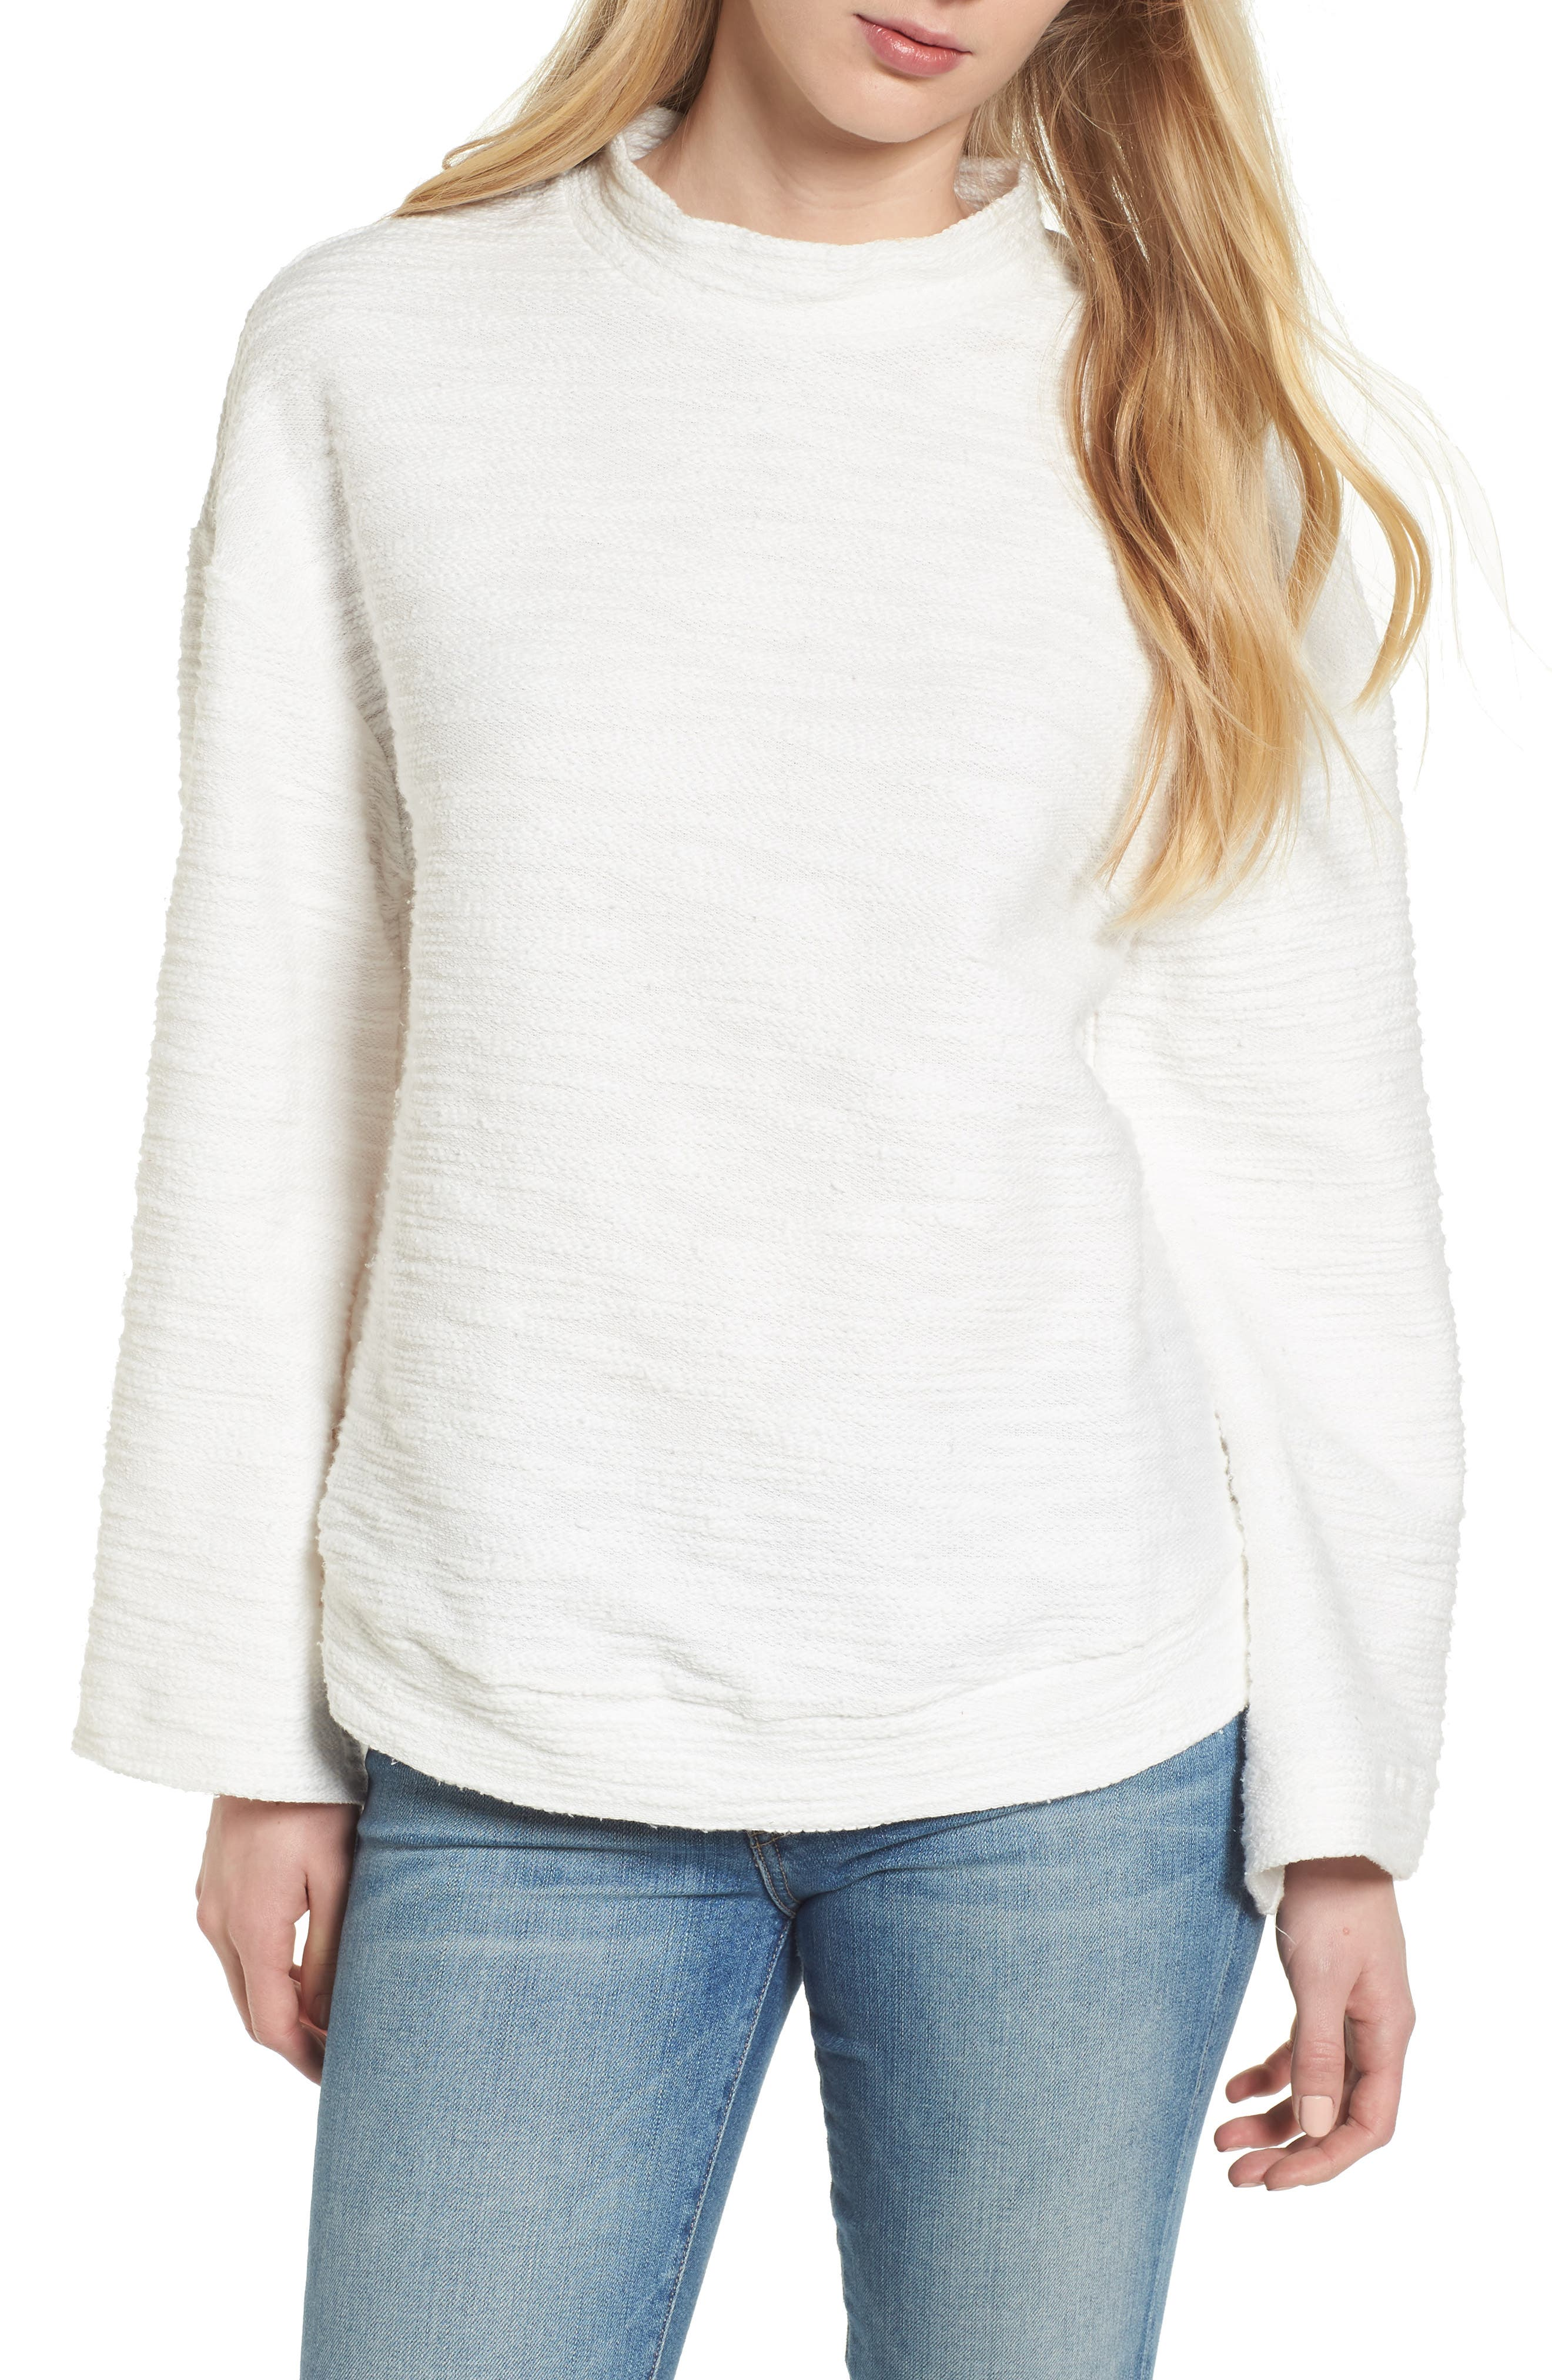 Bishop + Young No Sweat Pullover,                         Main,                         color, Ivory